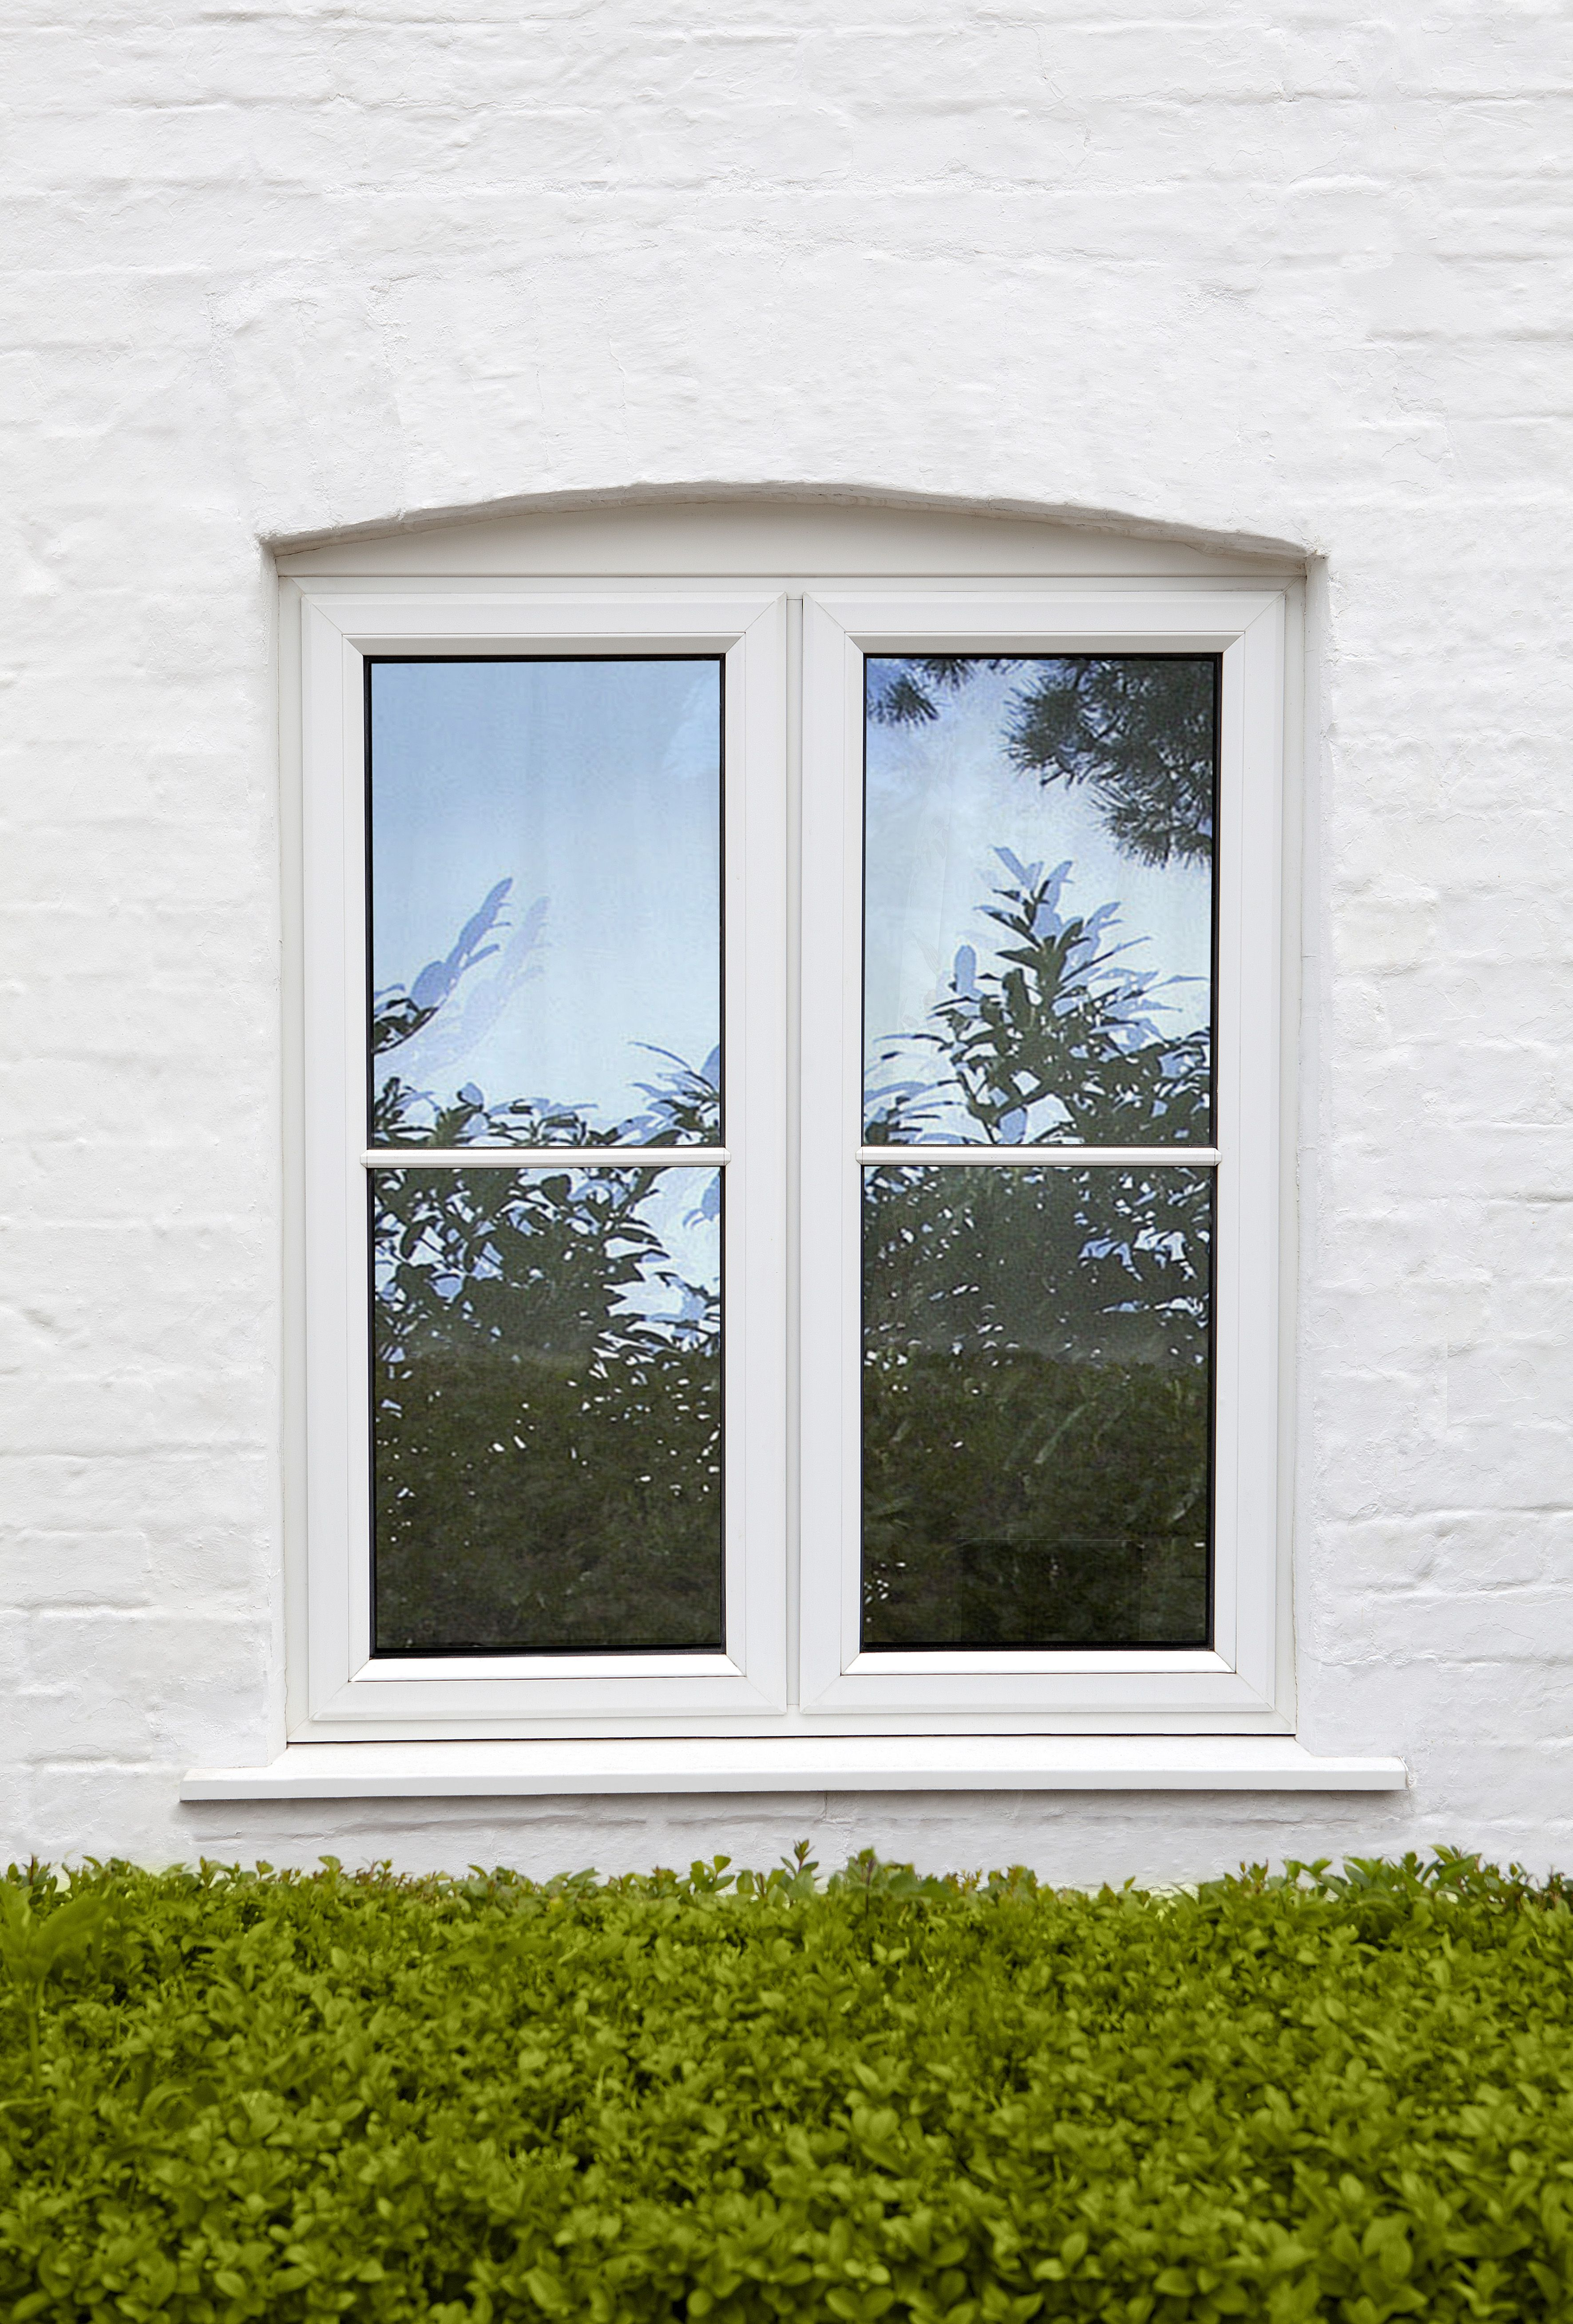 Upvc window ideas  sandtex masonry paint in pure brilliant white  home  pinterest